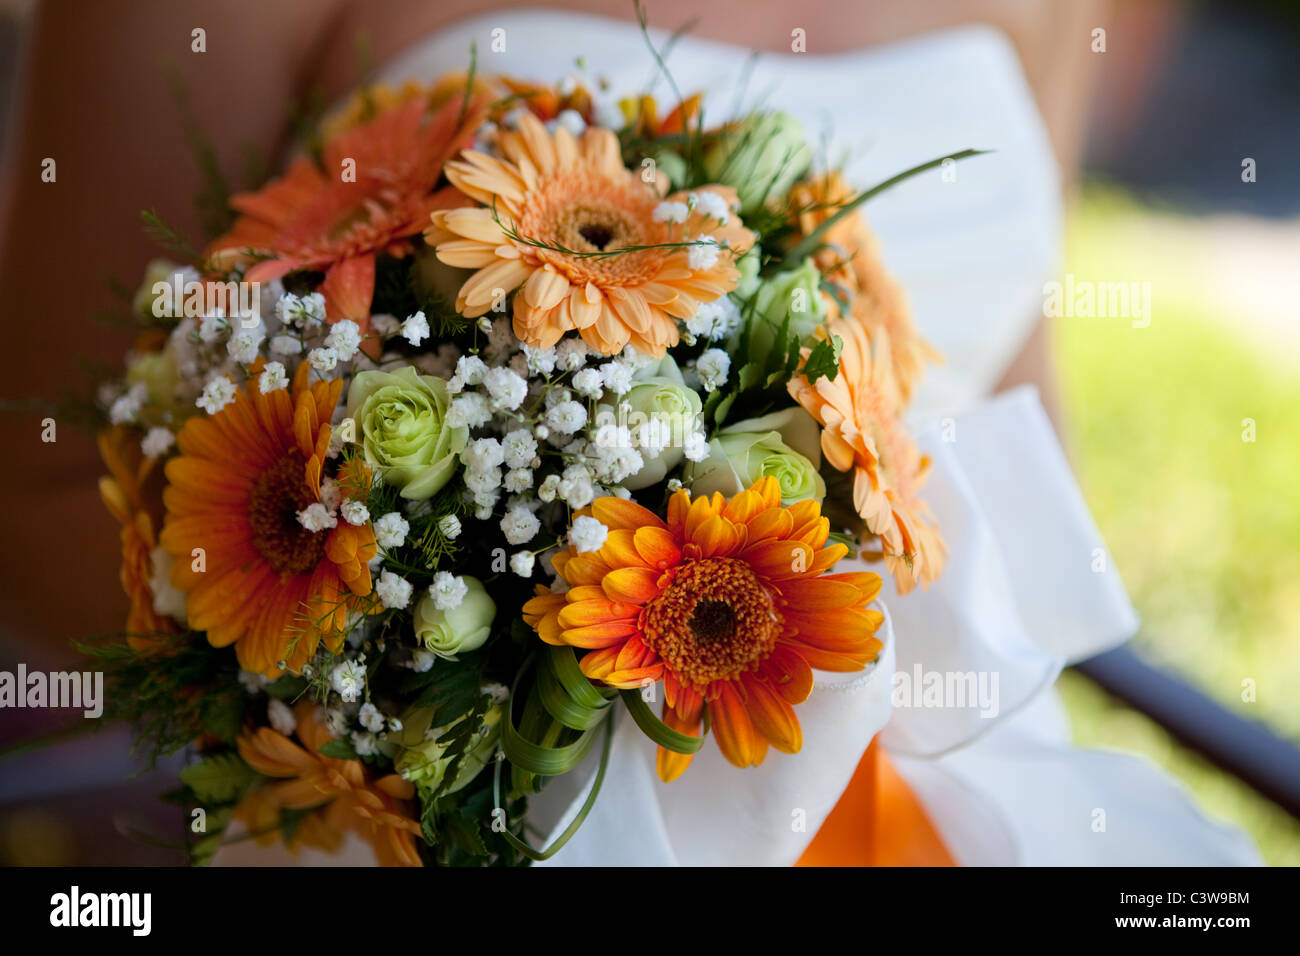 Brautstrauss Mit Orange Gerbera Blumen Stockfoto Bild 36820888 Alamy